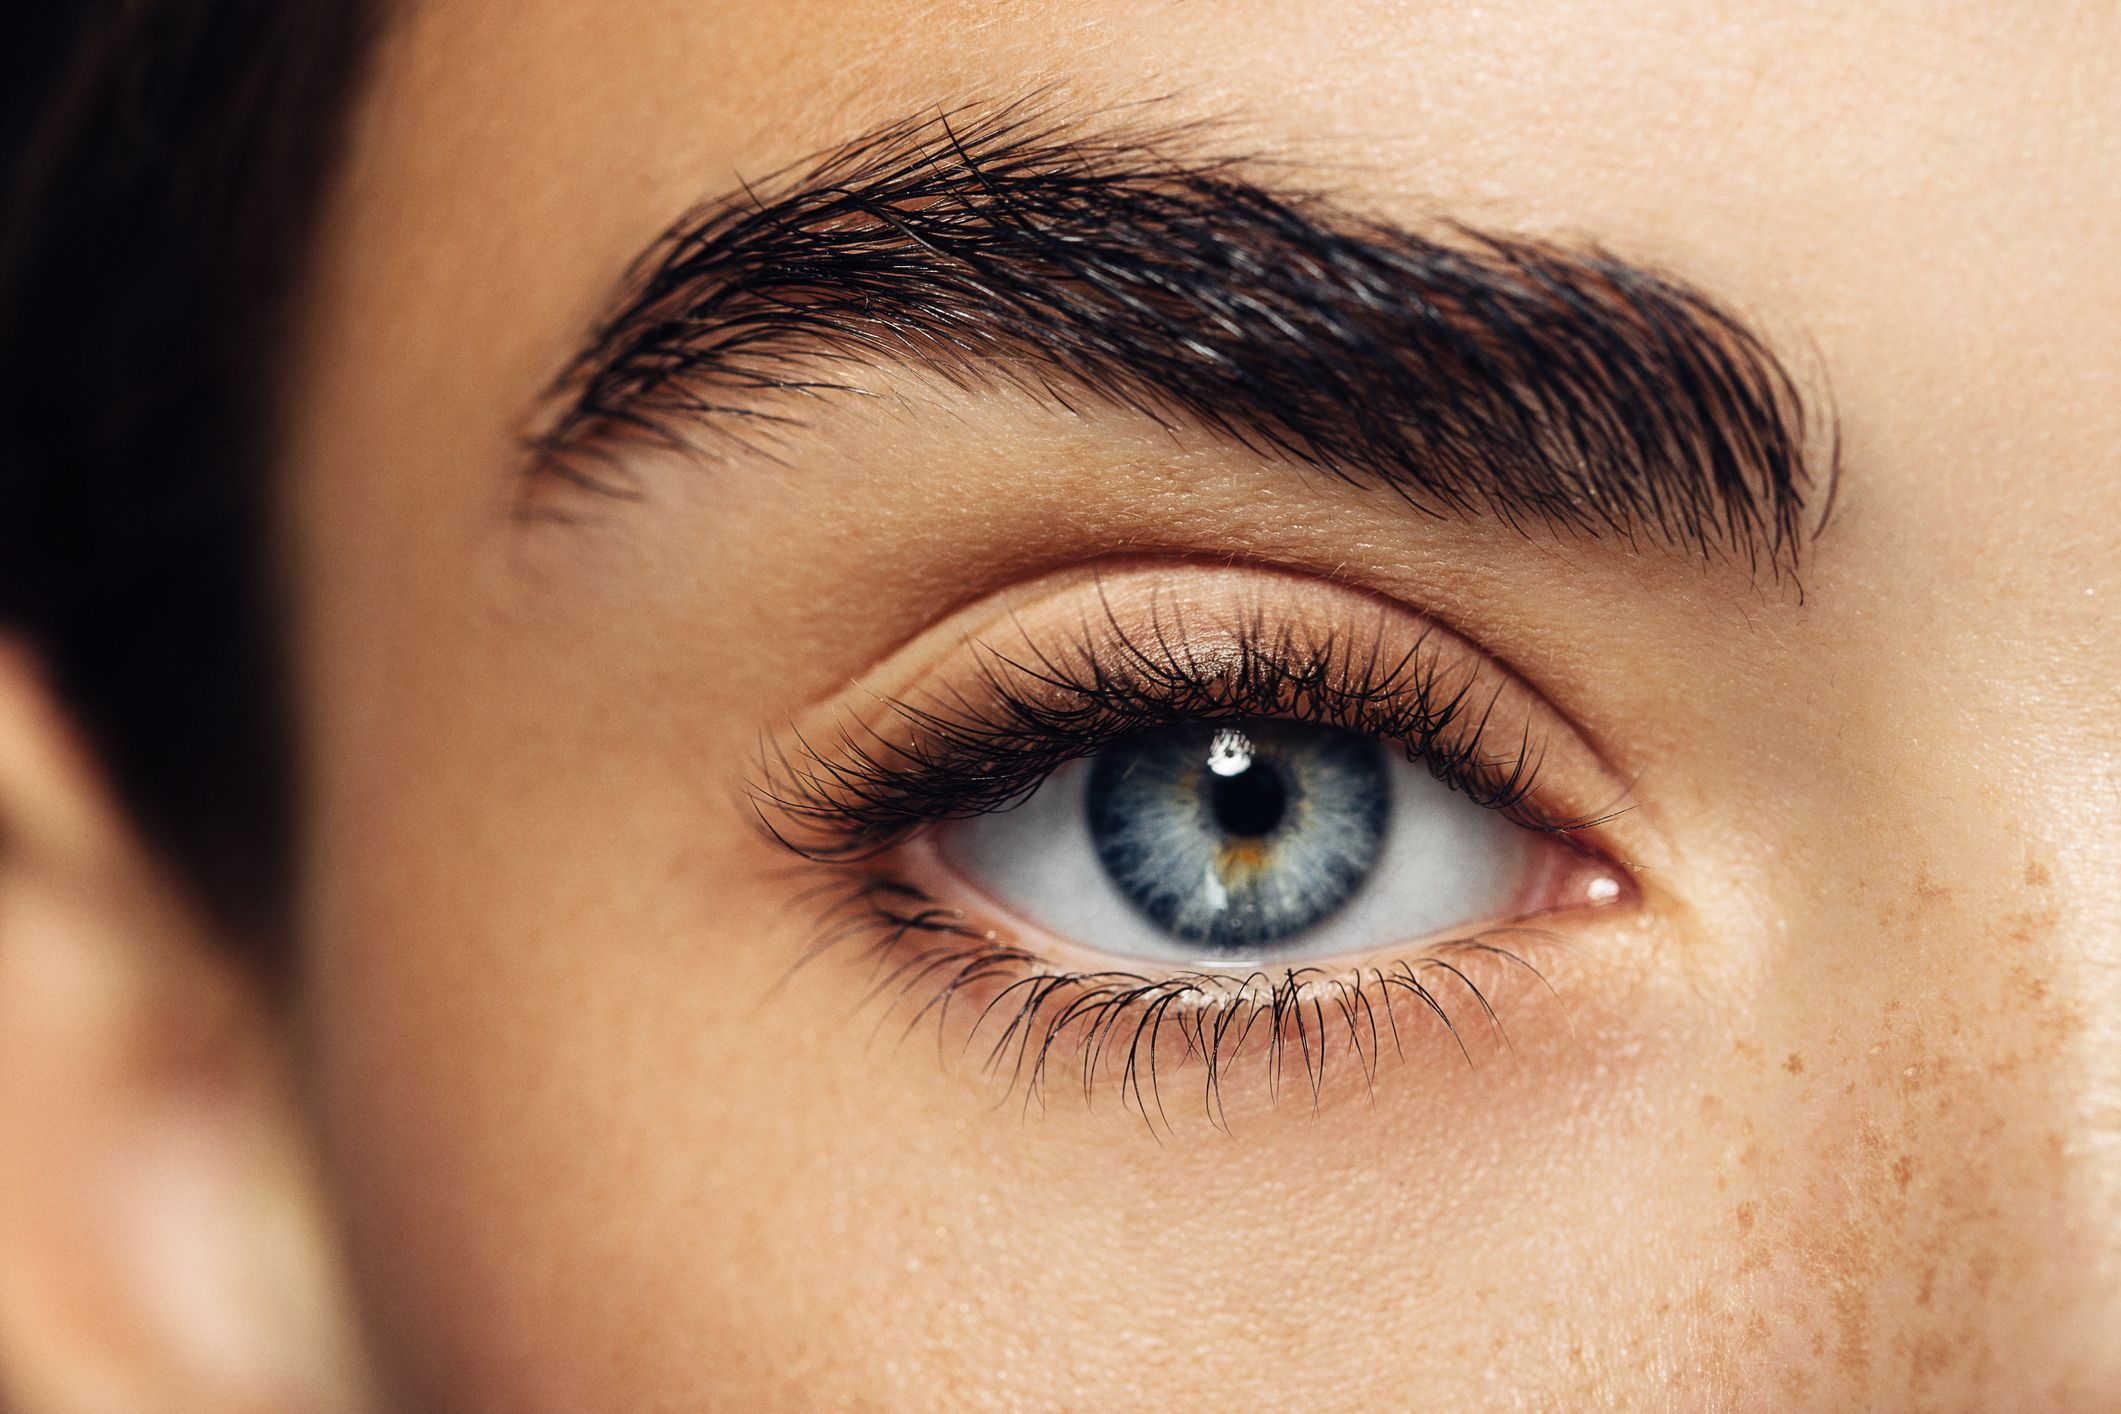 How to Thread Eyebrows At Home - DIY Brow Threading Hair Removal